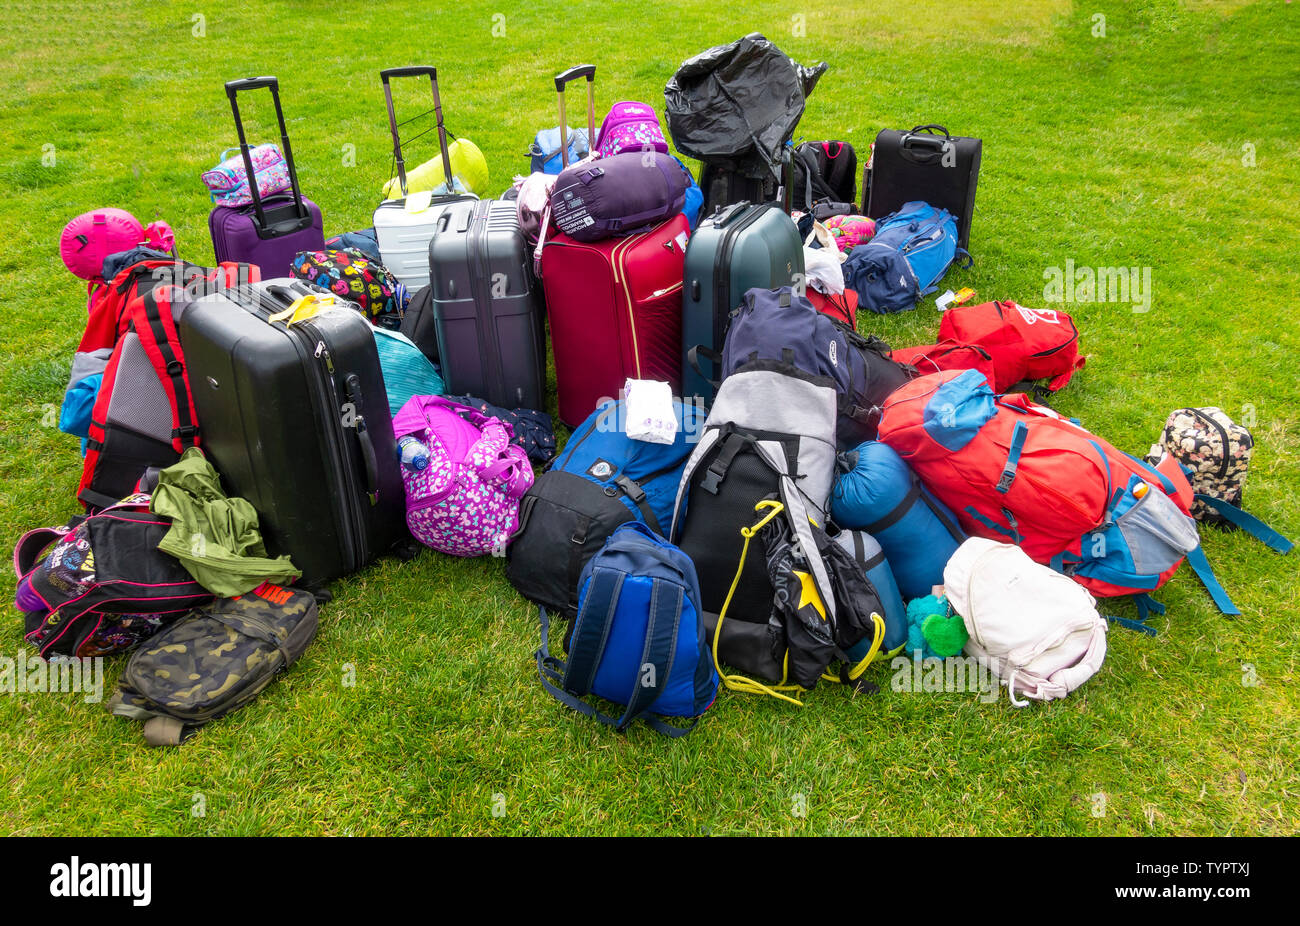 a-tour-groups-luggage-sits-on-the-lawn-a